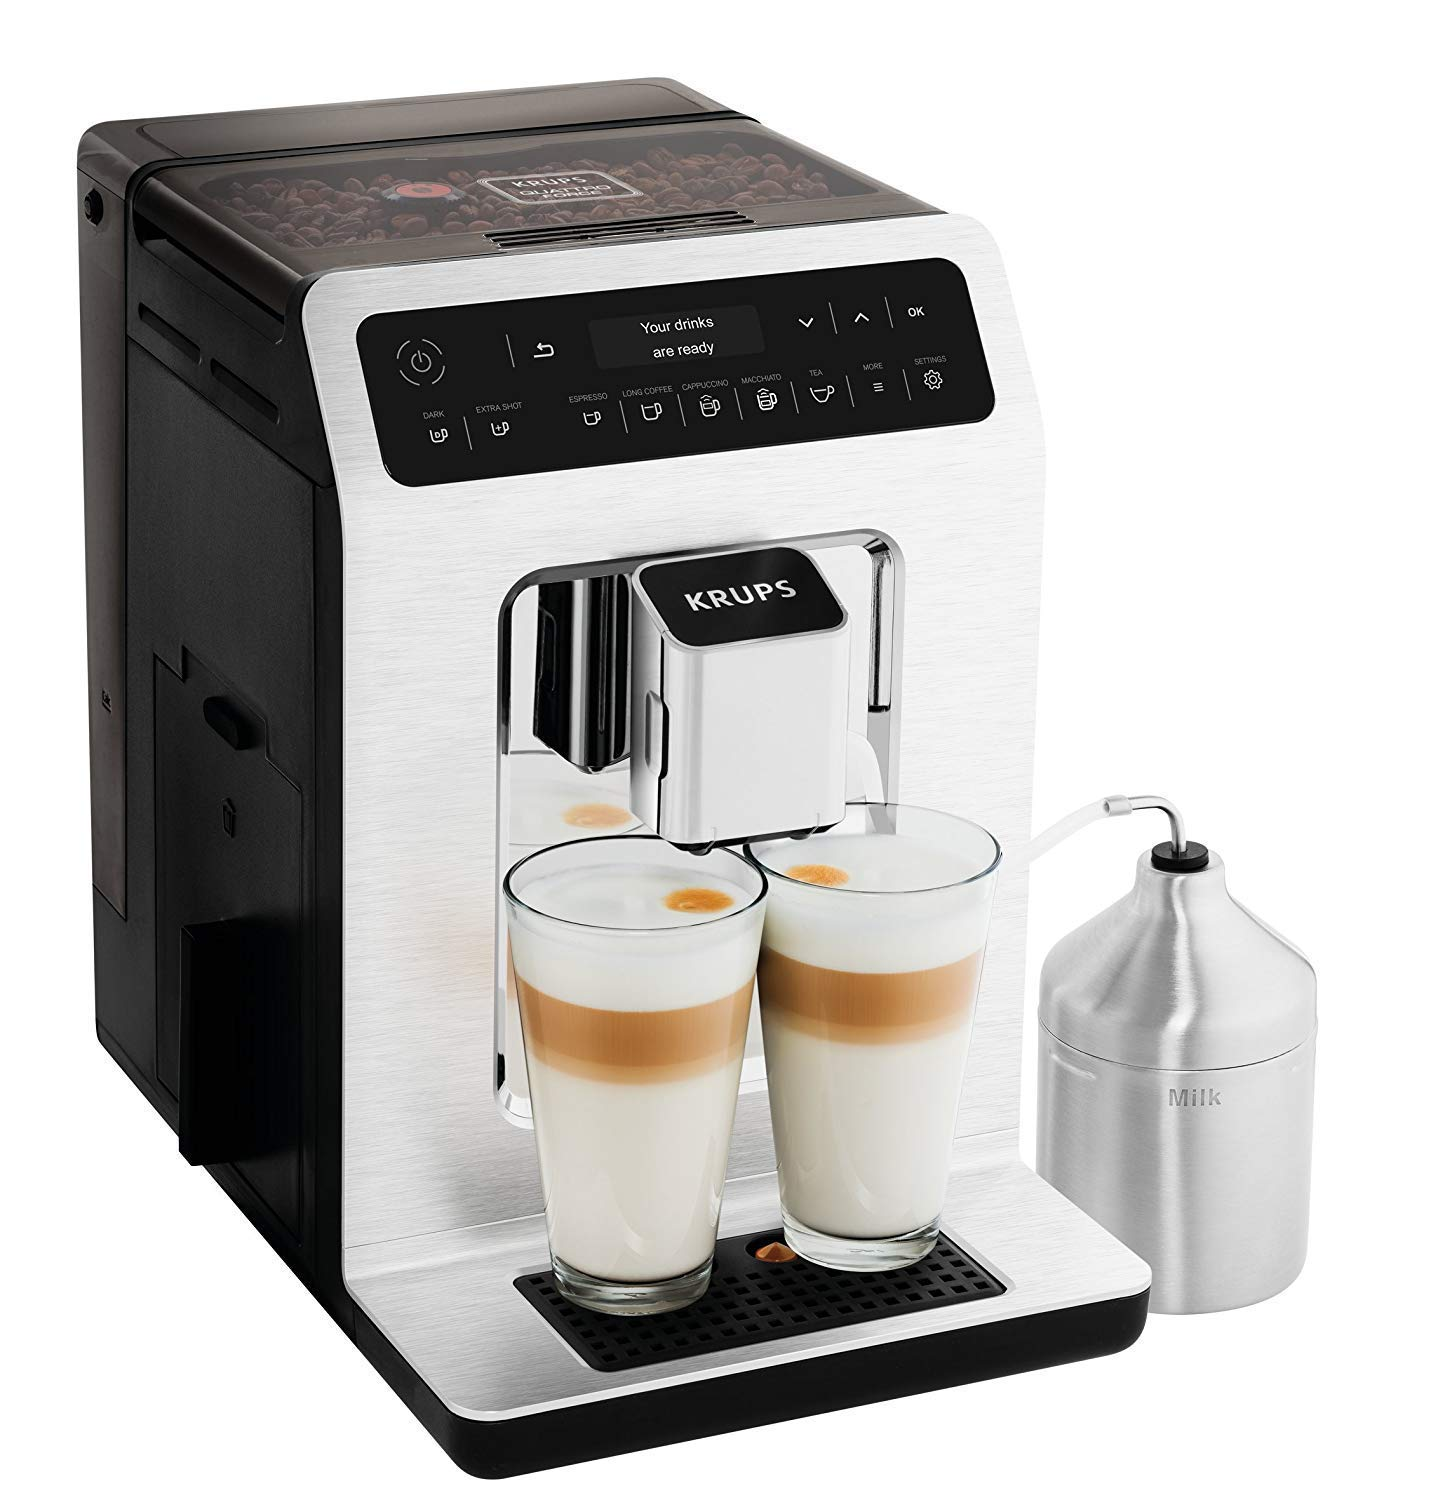 krups superautomatic espresso machine reviews coffee on. Black Bedroom Furniture Sets. Home Design Ideas